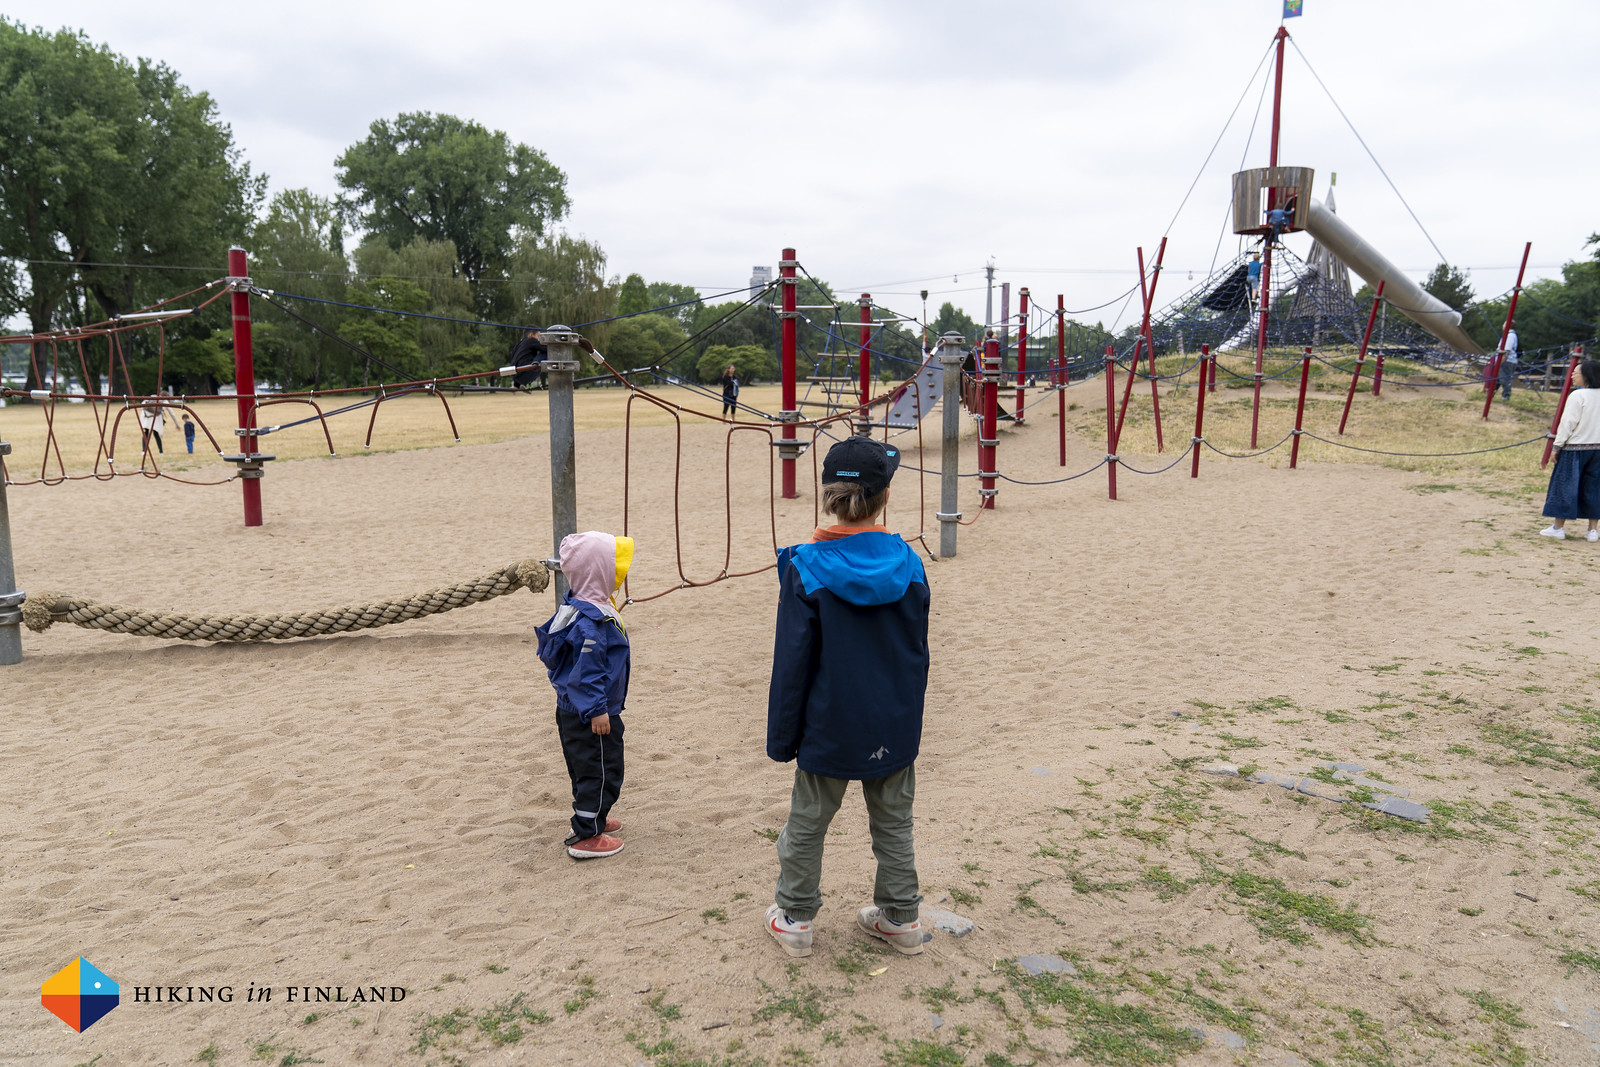 Cologne Playgrounds